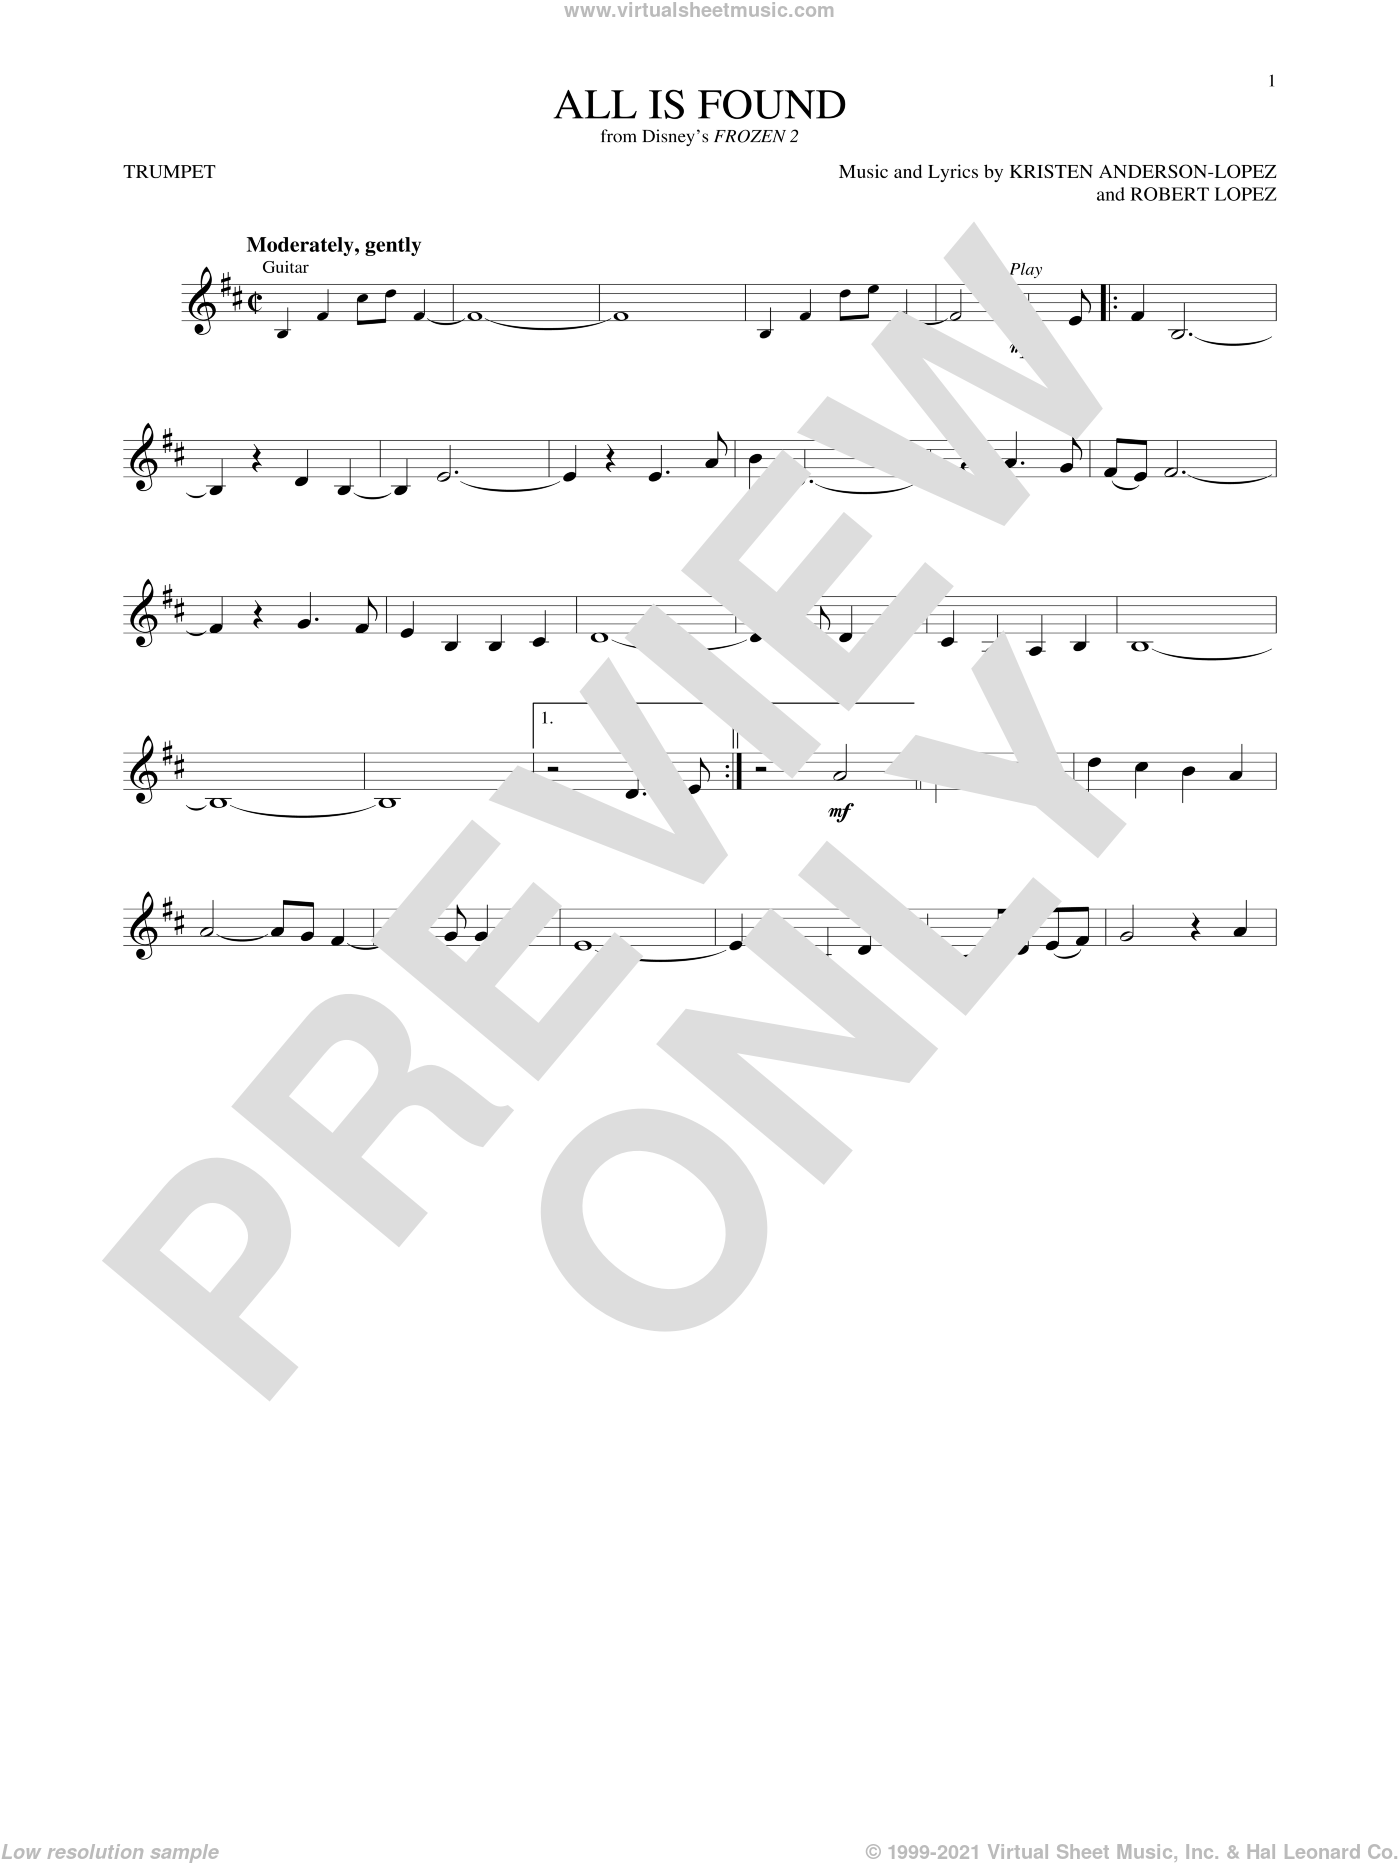 All Is Found (from Disney's Frozen 2) sheet music for trumpet solo by Evan Rachel Wood, Kristen Anderson-Lopez and Robert Lopez, intermediate skill level